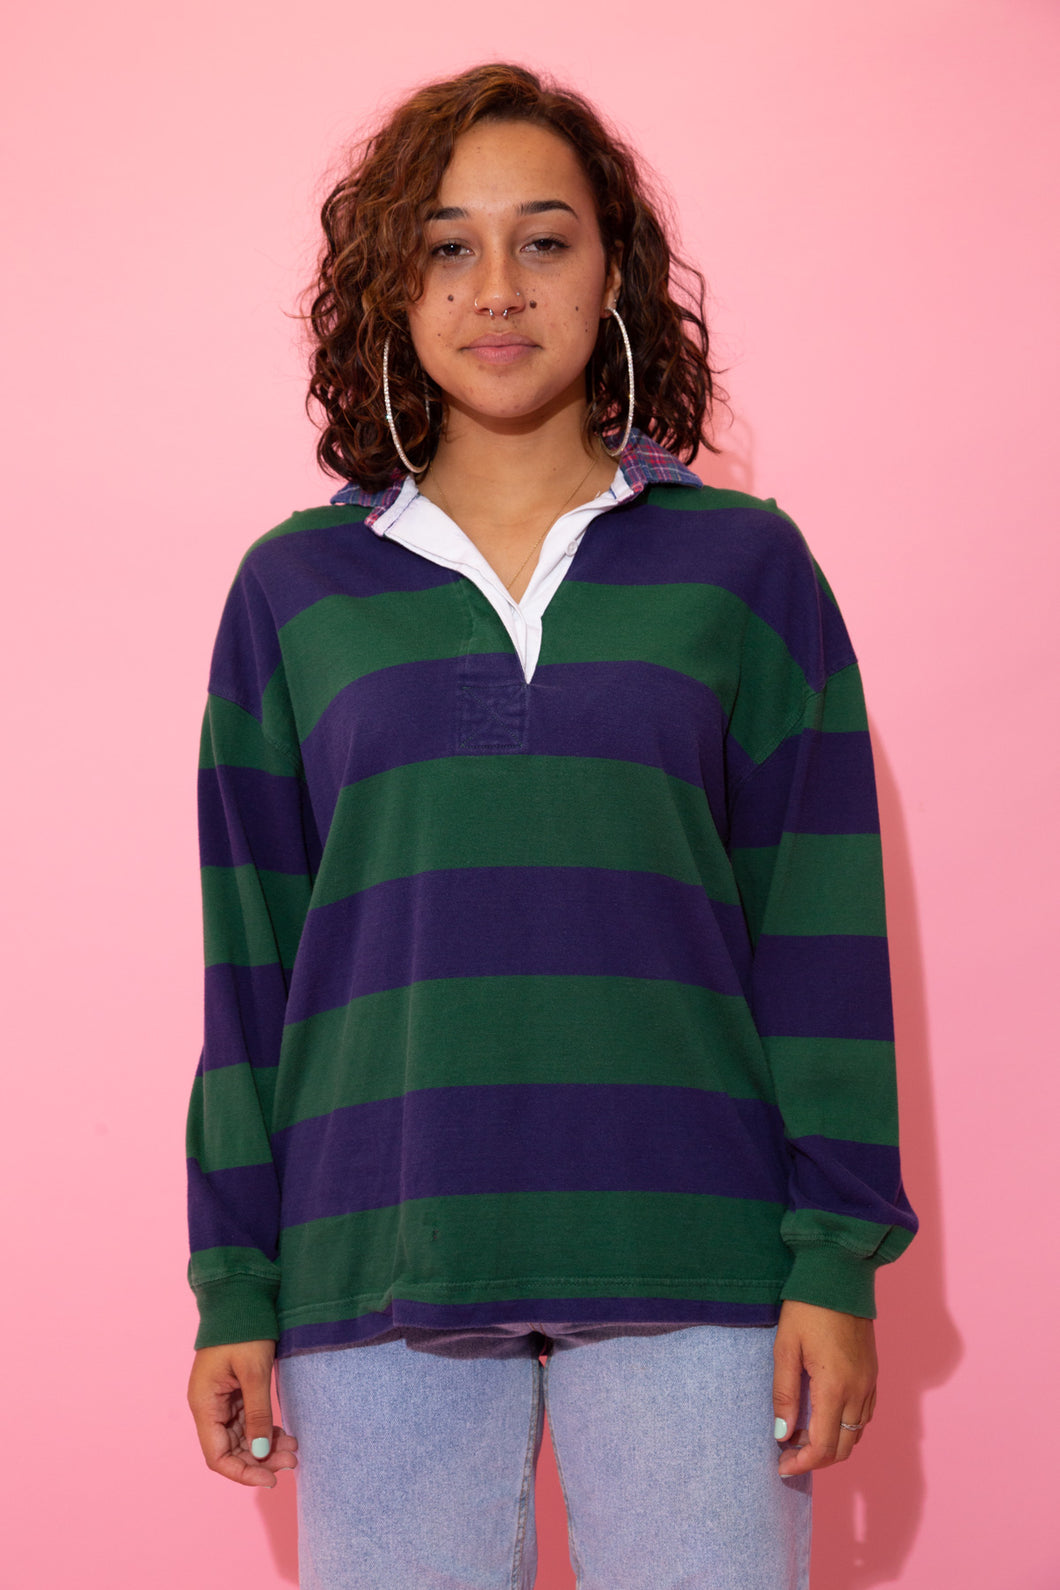 the model wears a navy and green striped rugby